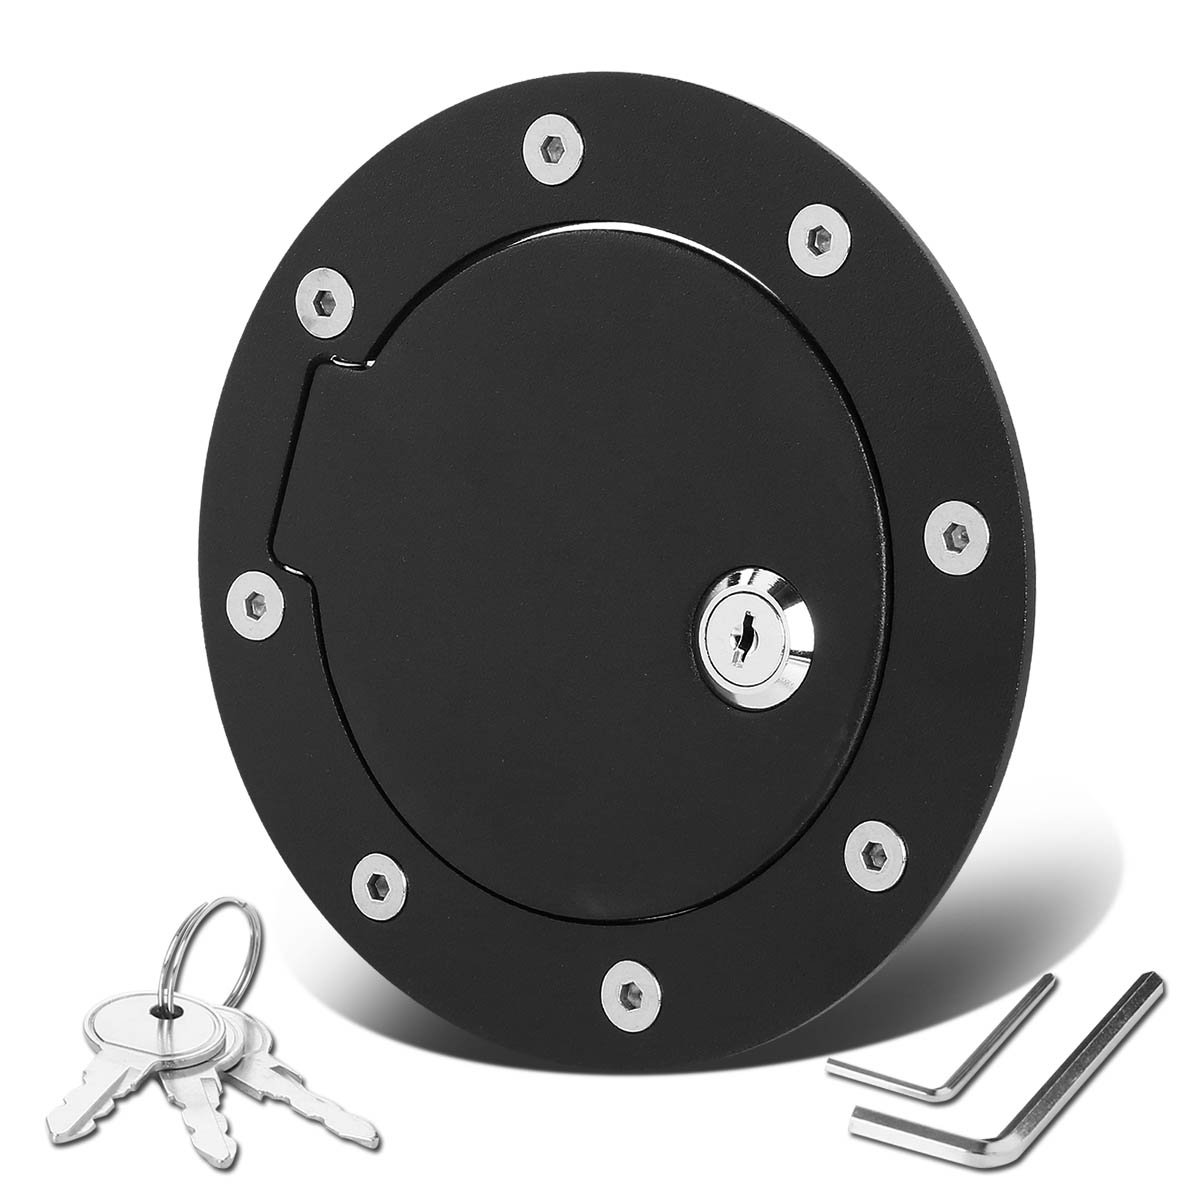 For Ford Super Duty/Expedition/Excursion/Lincoln Navigator Fuel Gas Tank Door with Lock & Keys (Black Coated) Auto Dynasty